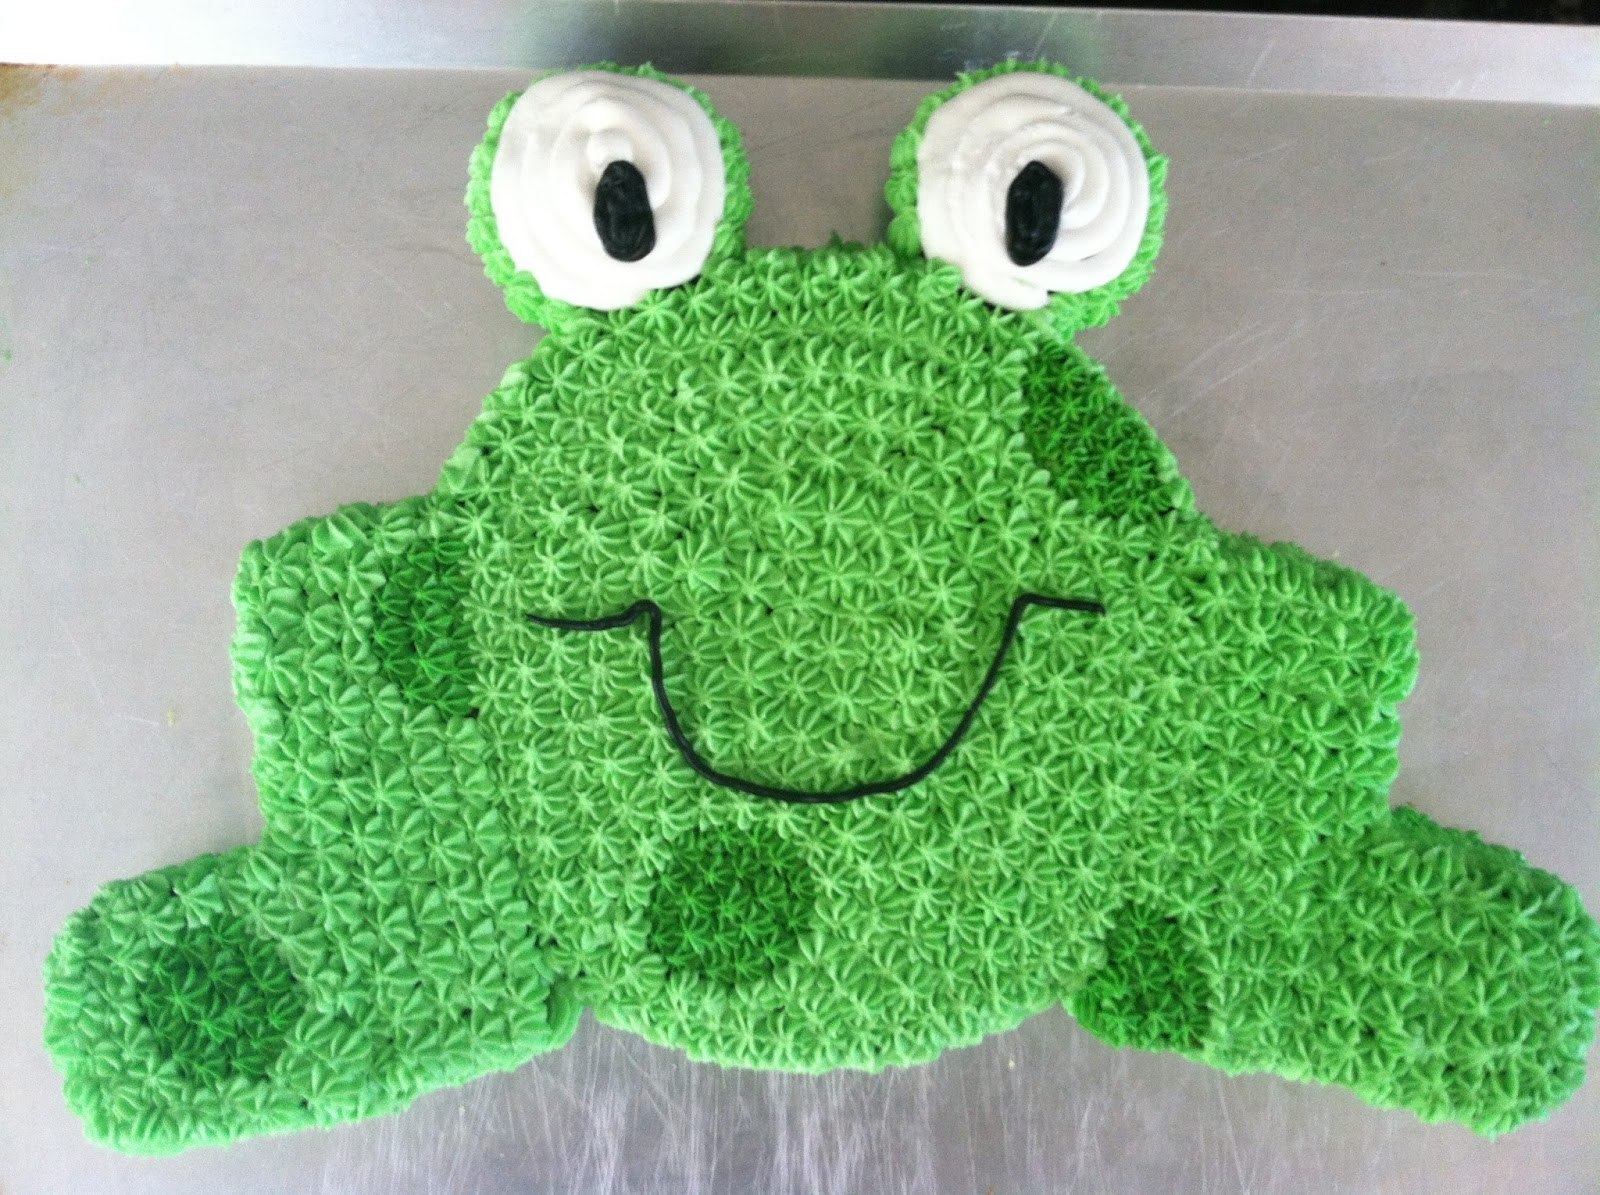 Pin Frog 4 Clip Art Vector Online Royalty Free Cake On